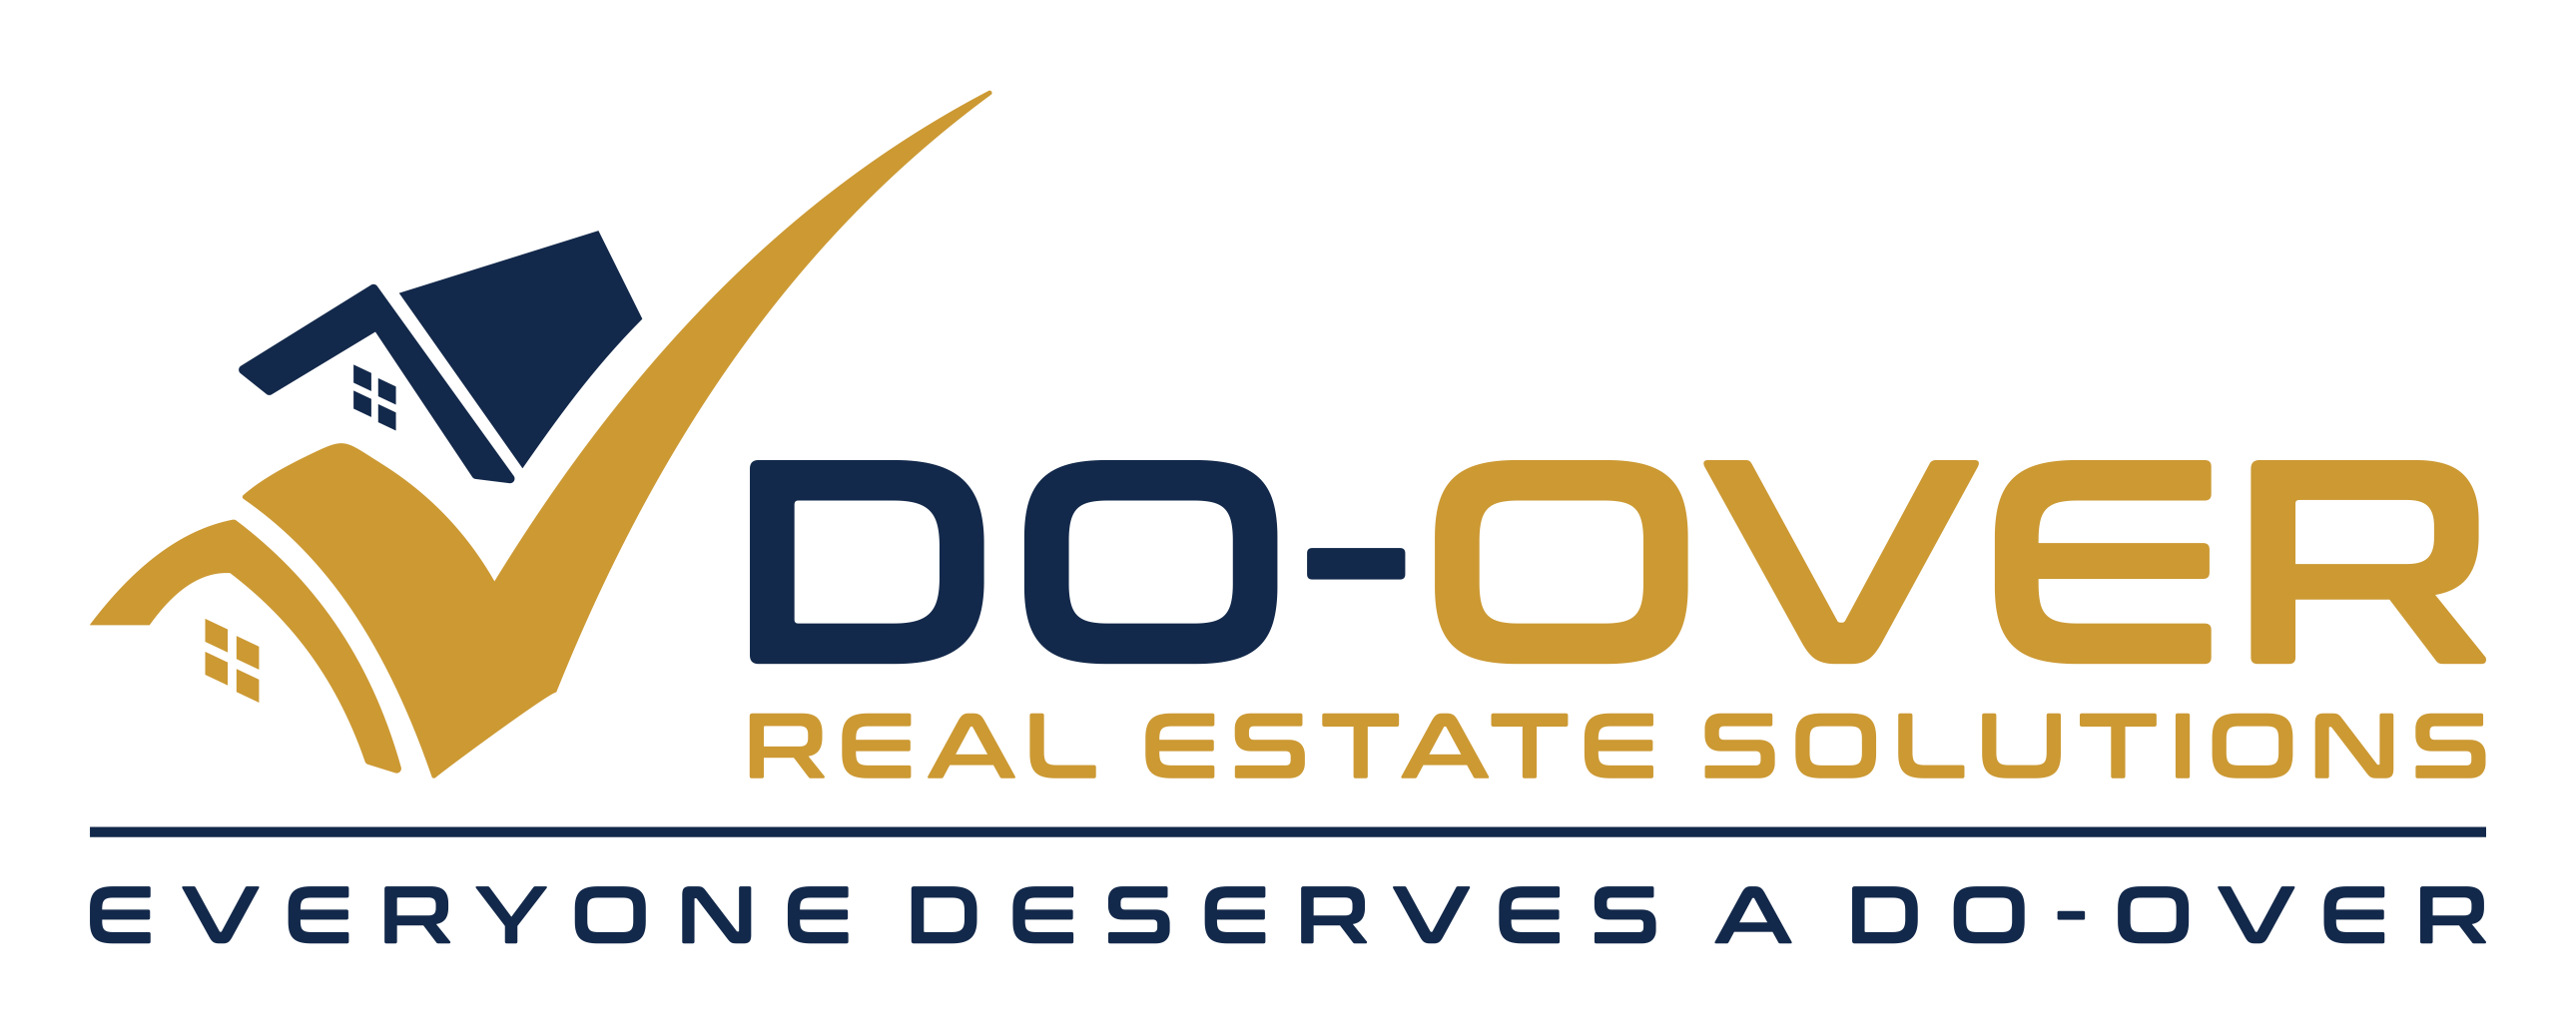 Do-Over Real Estate Solutions